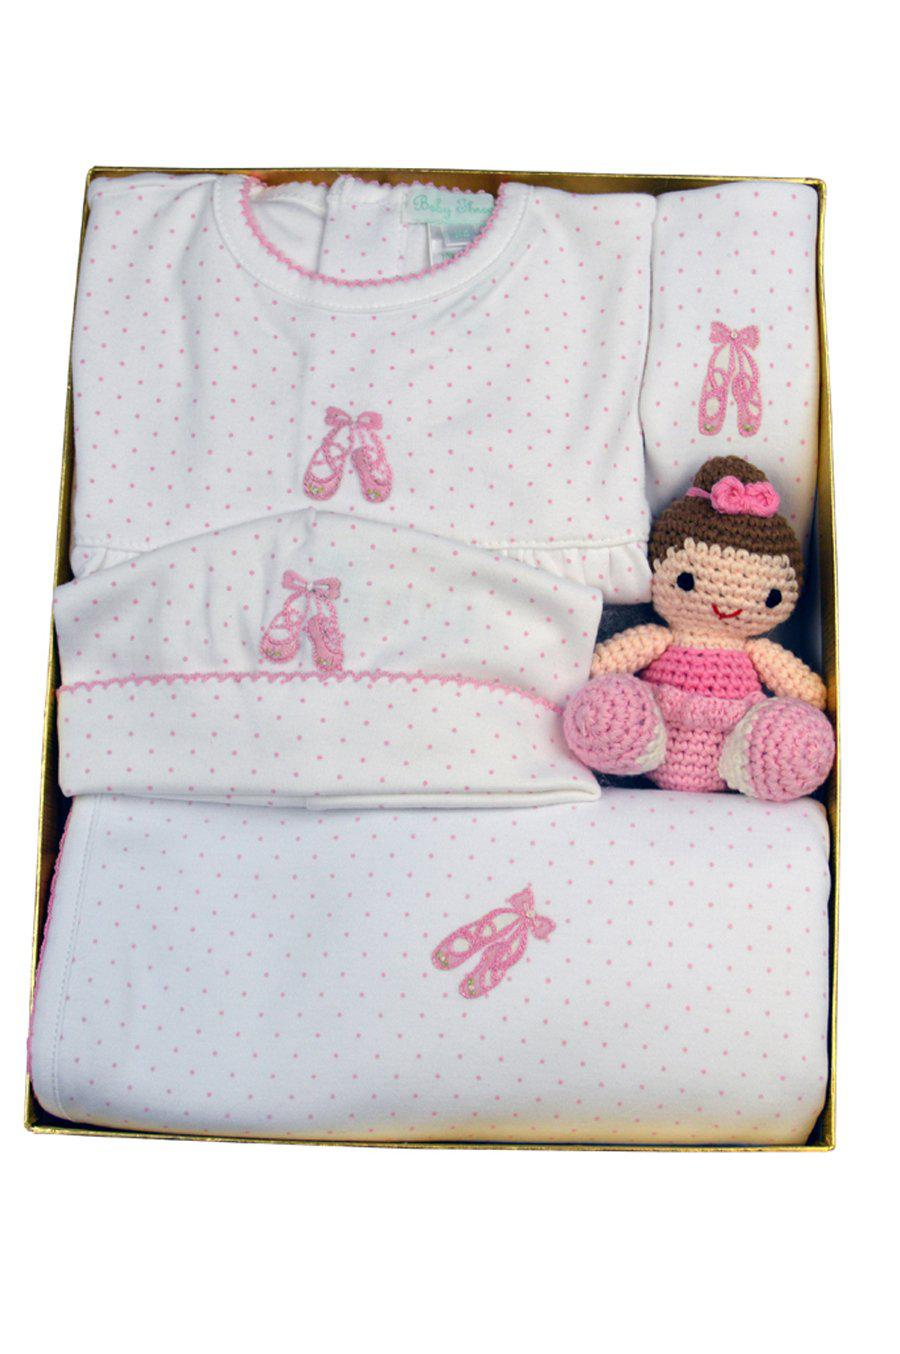 Ballerina Gift Set with Rattle - Little Threads Inc. Children's Clothing